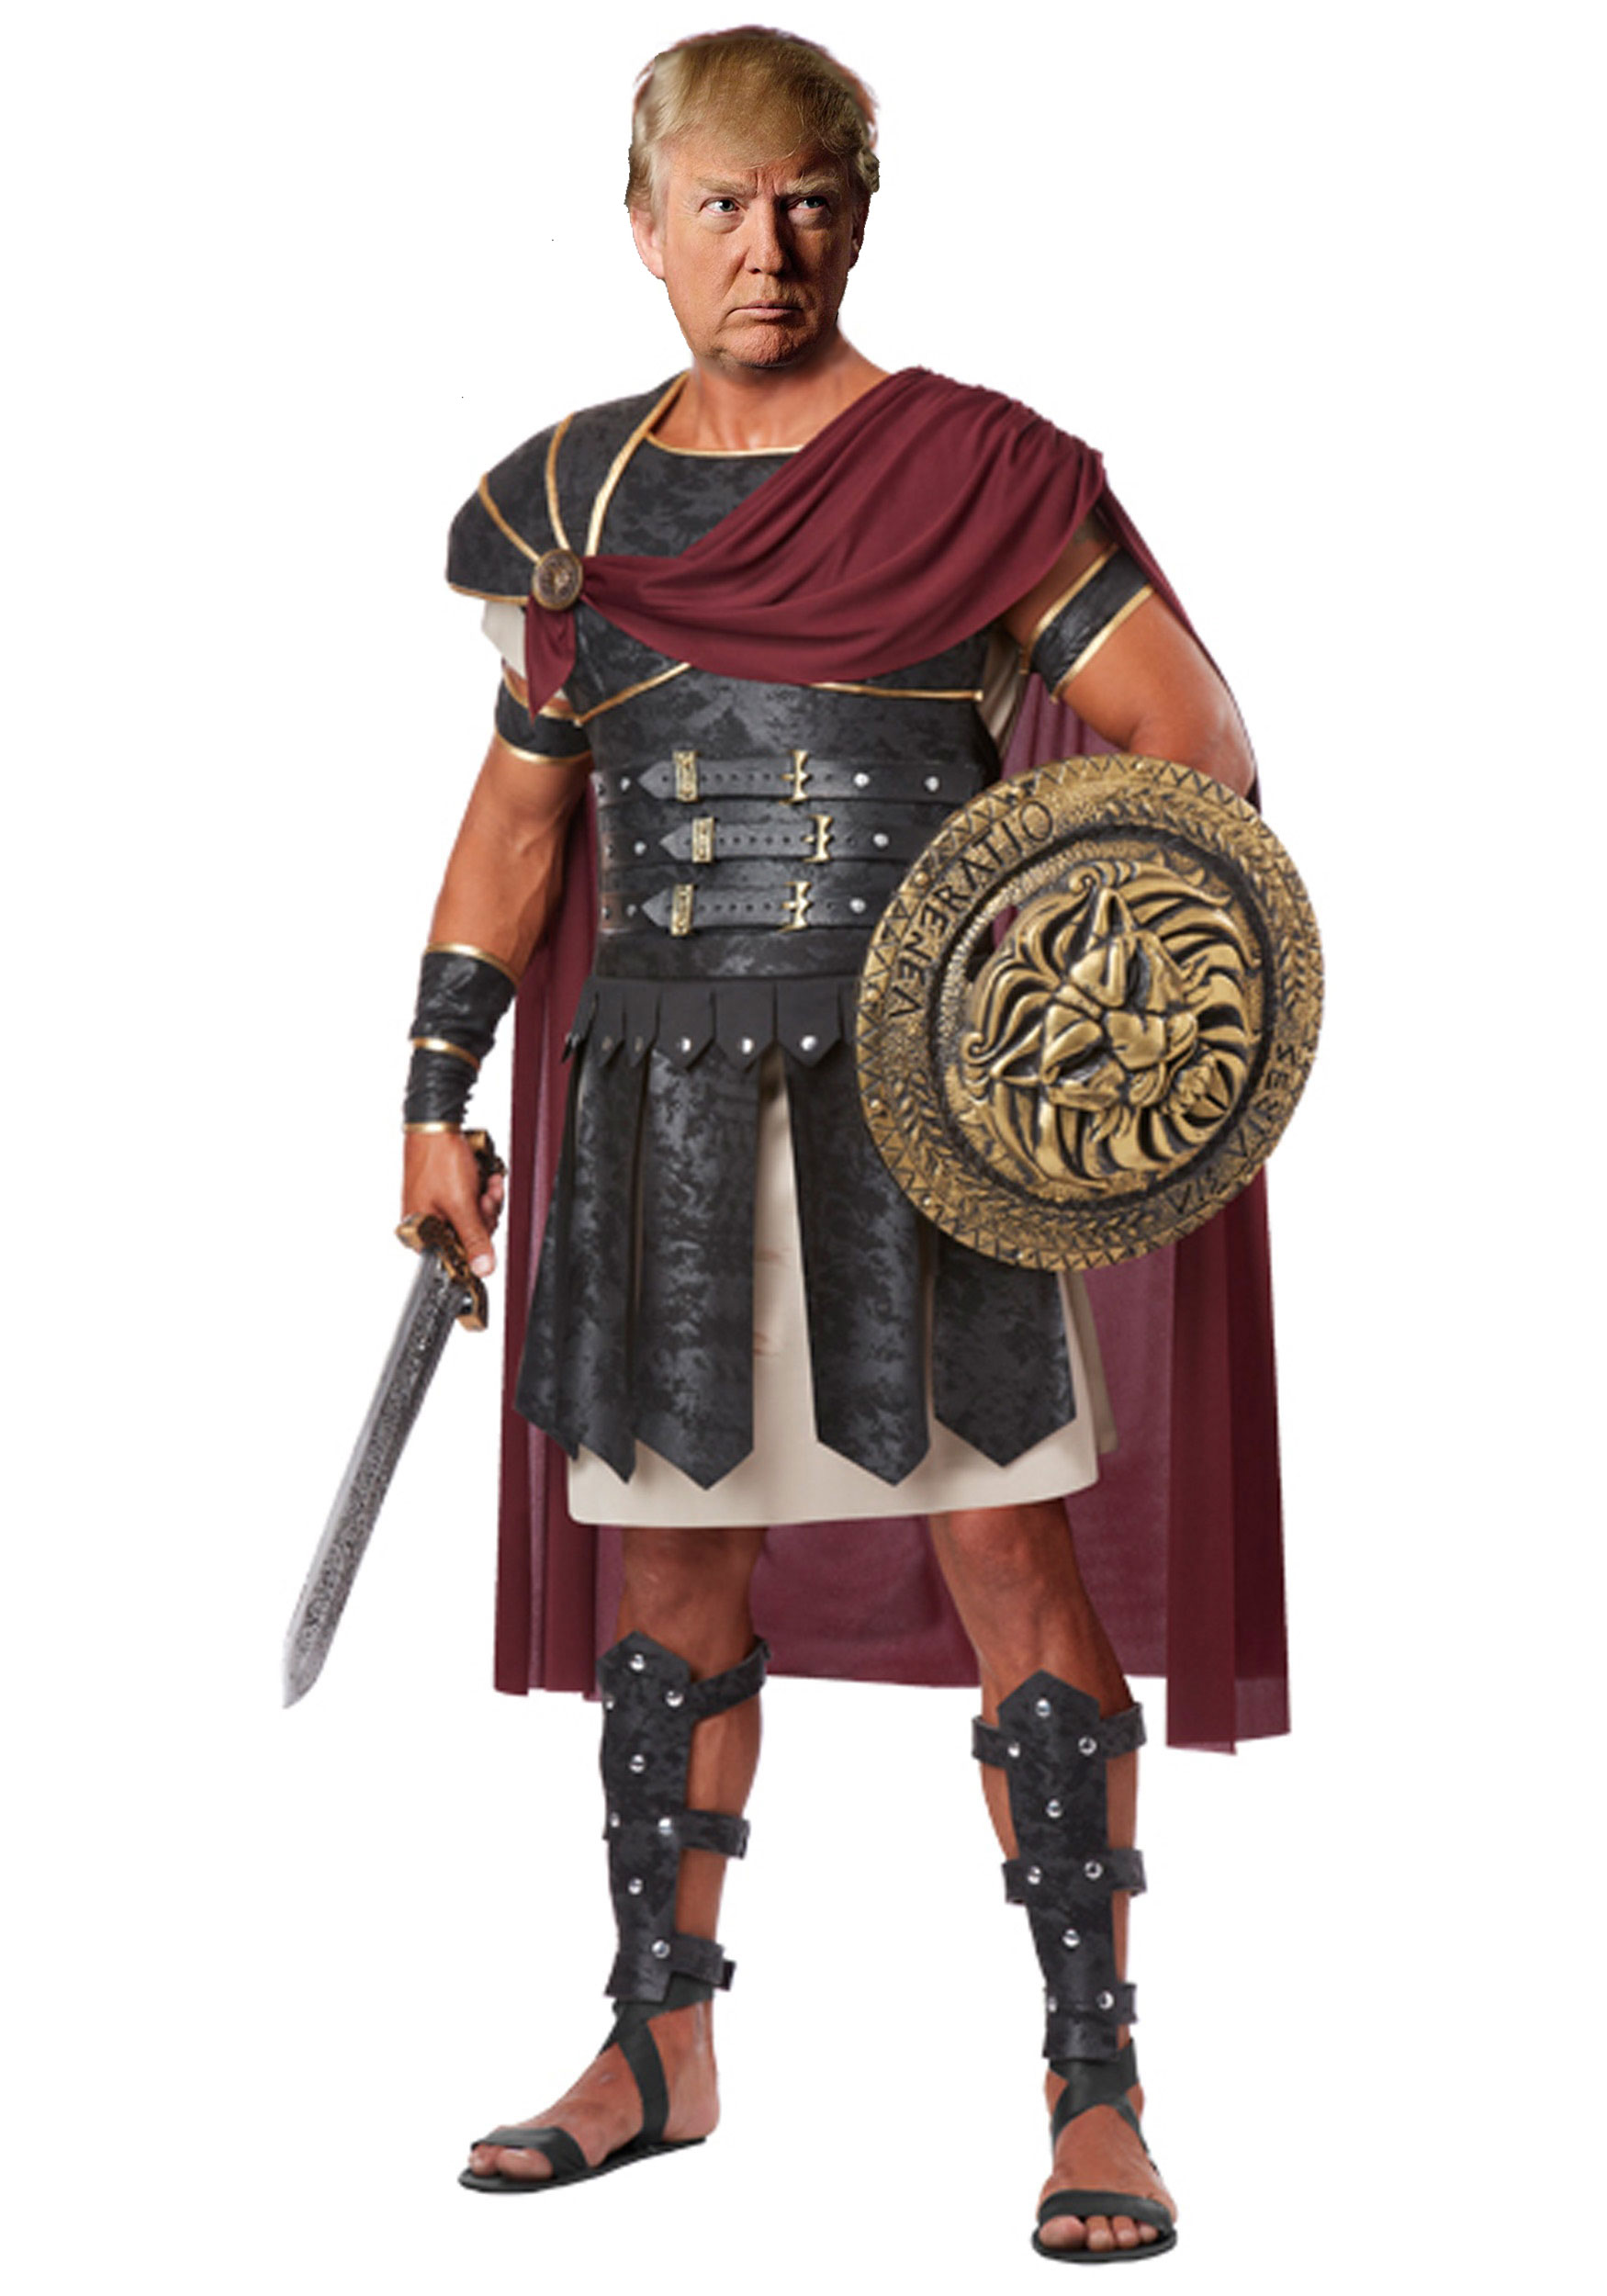 life roman gladiator essay Explain and discuss, what life was like for a roman gladiator aron lawford gladiators were a form of entertainment during the roman empire this essay.